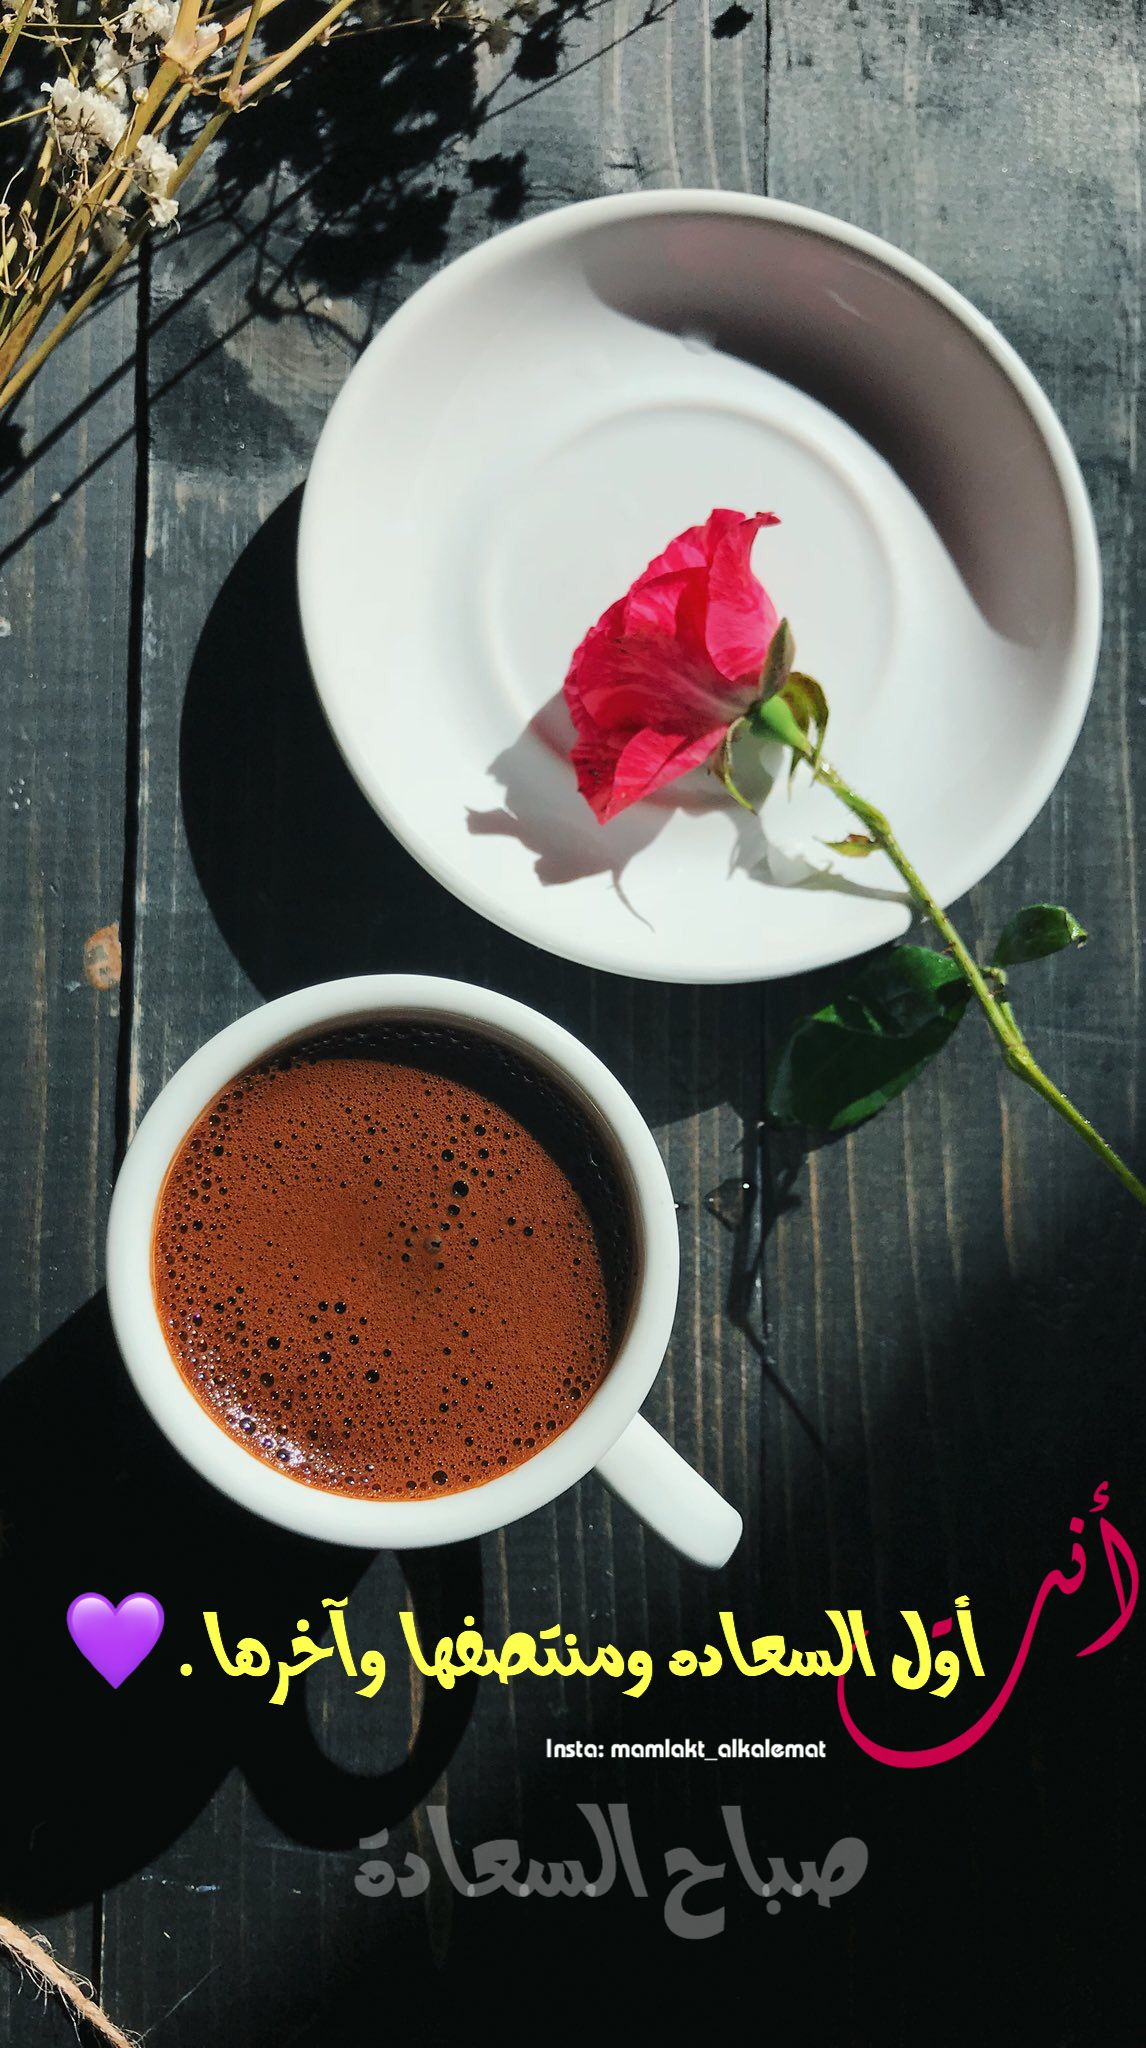 Pin By Rody On Love Morning Love Quotes My Coffee Love In Arabic